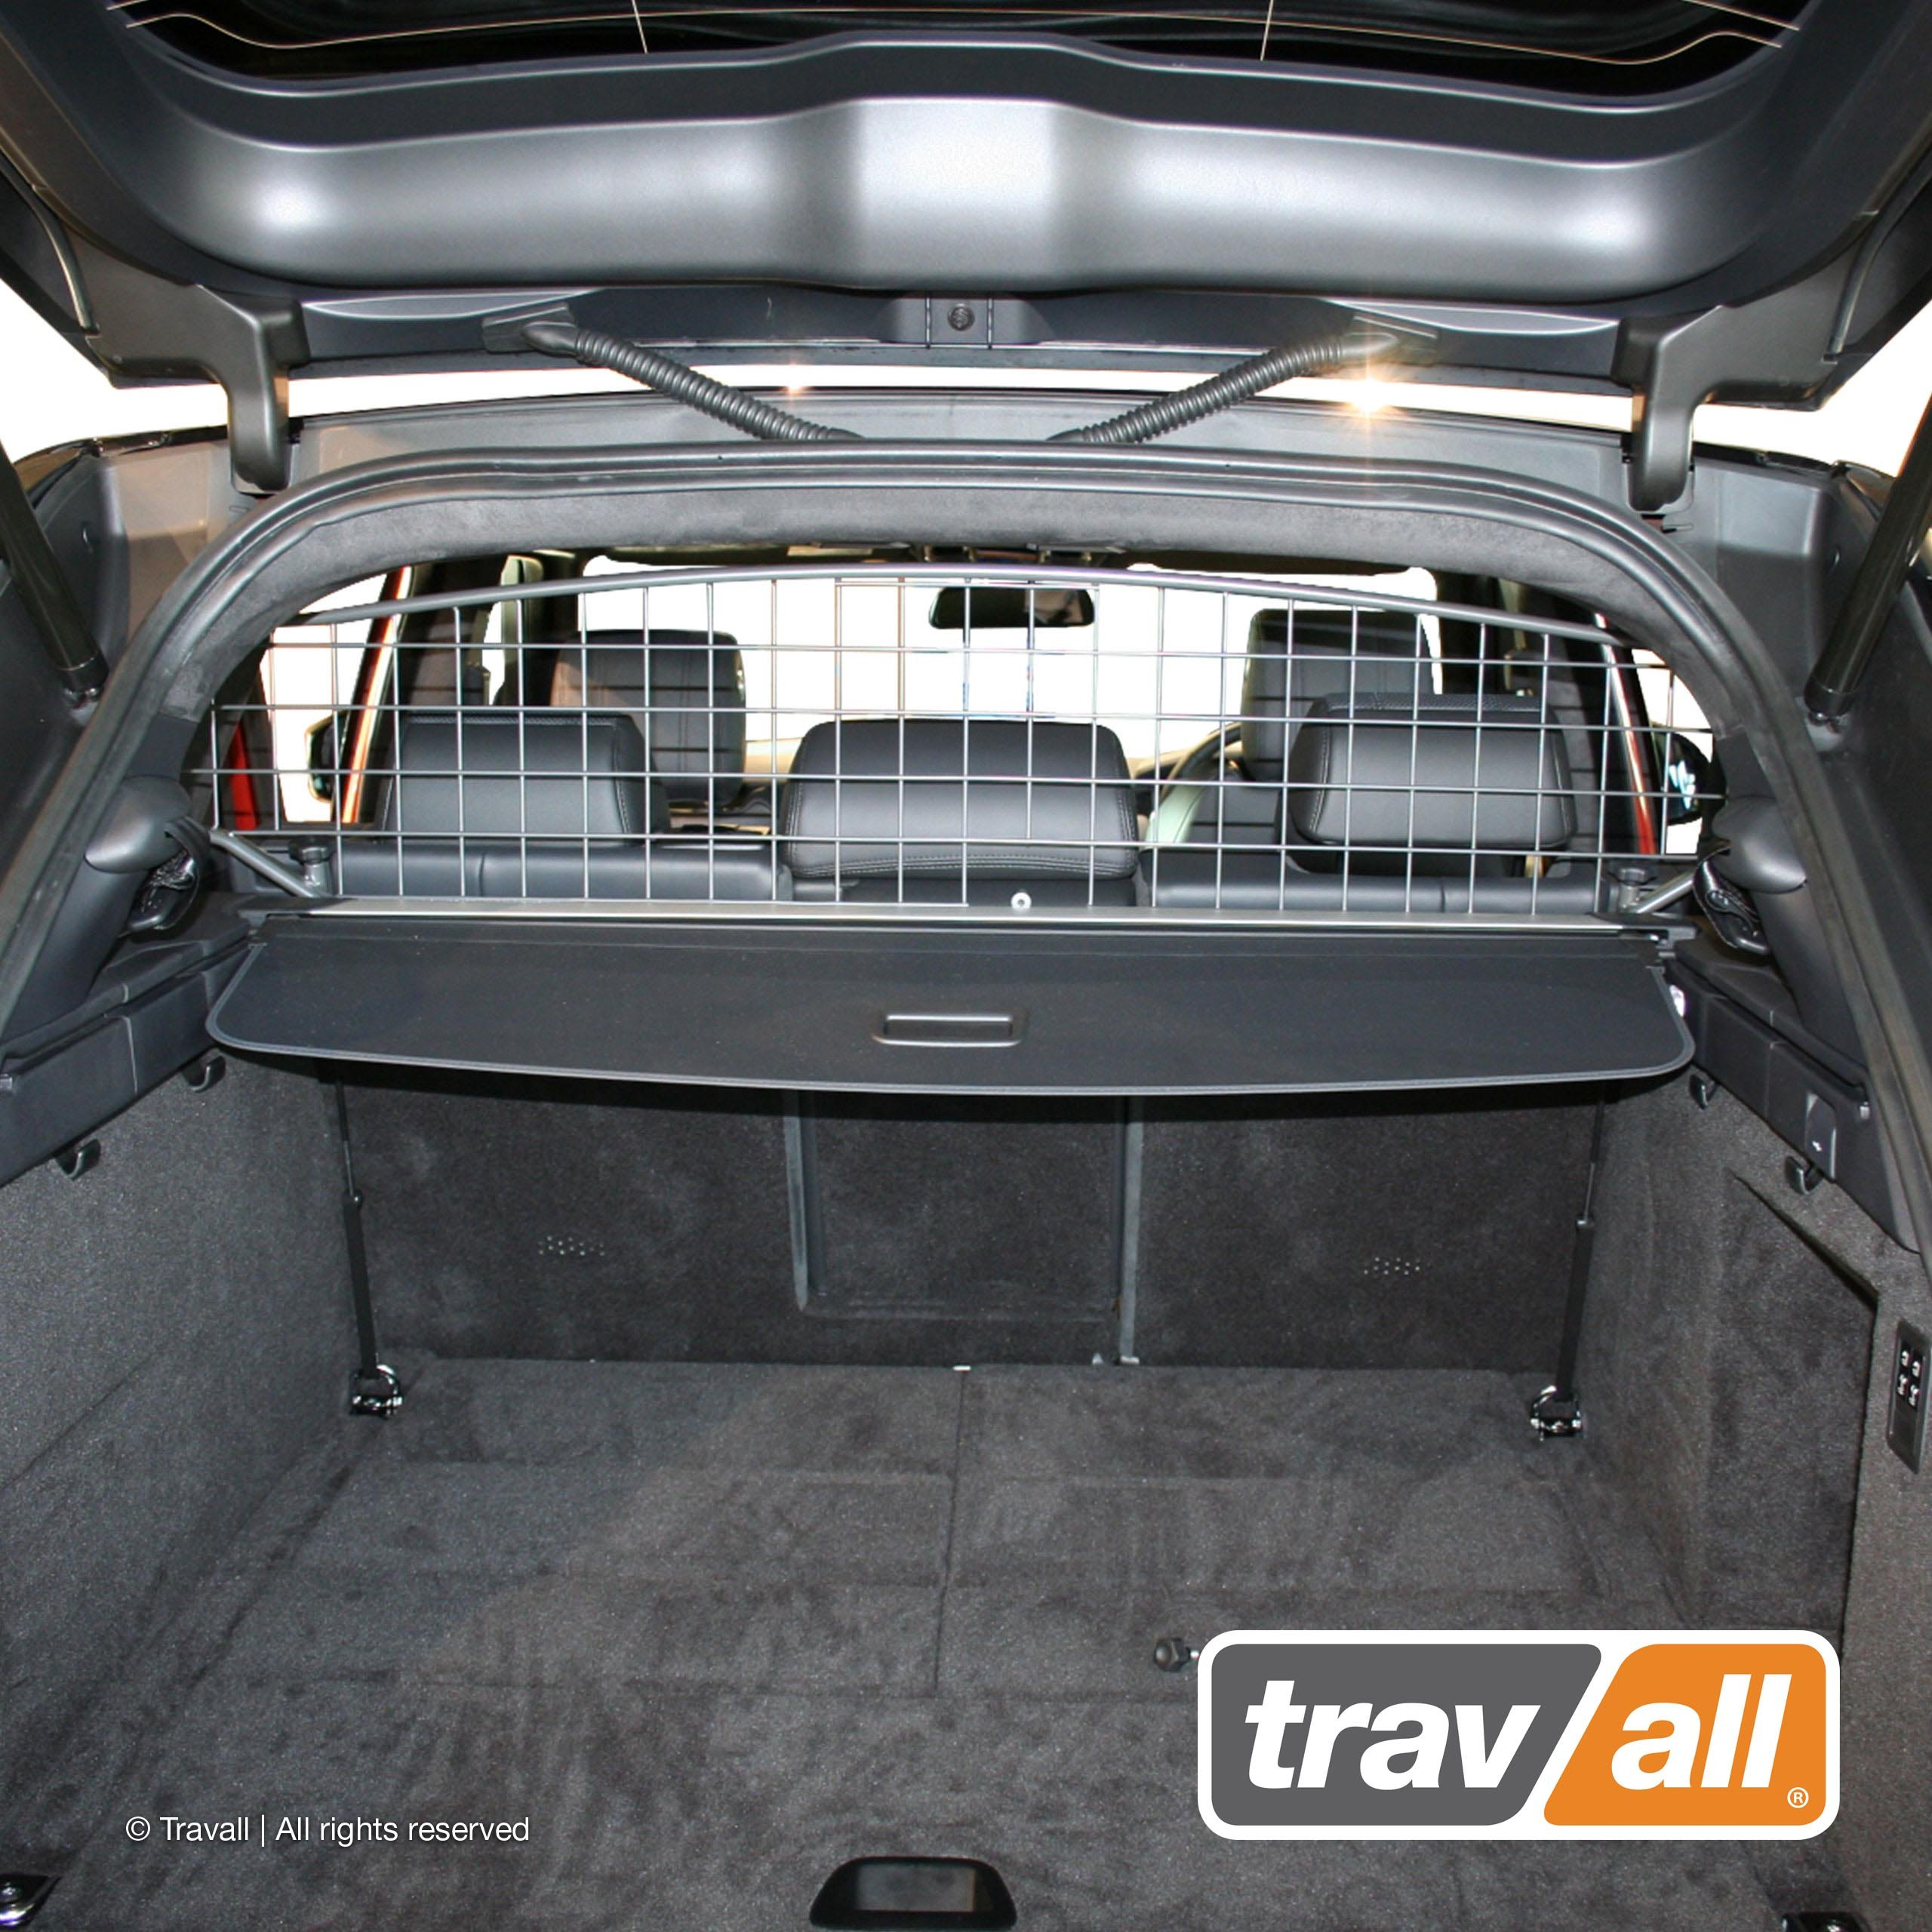 Travall Guard Compatible with Land Rover Range Rover Sport (2013-Current) Range Rover Sport SVR (2015-Current) TDG1394 - Rattle-Free Steel Pet Barrier by Travall